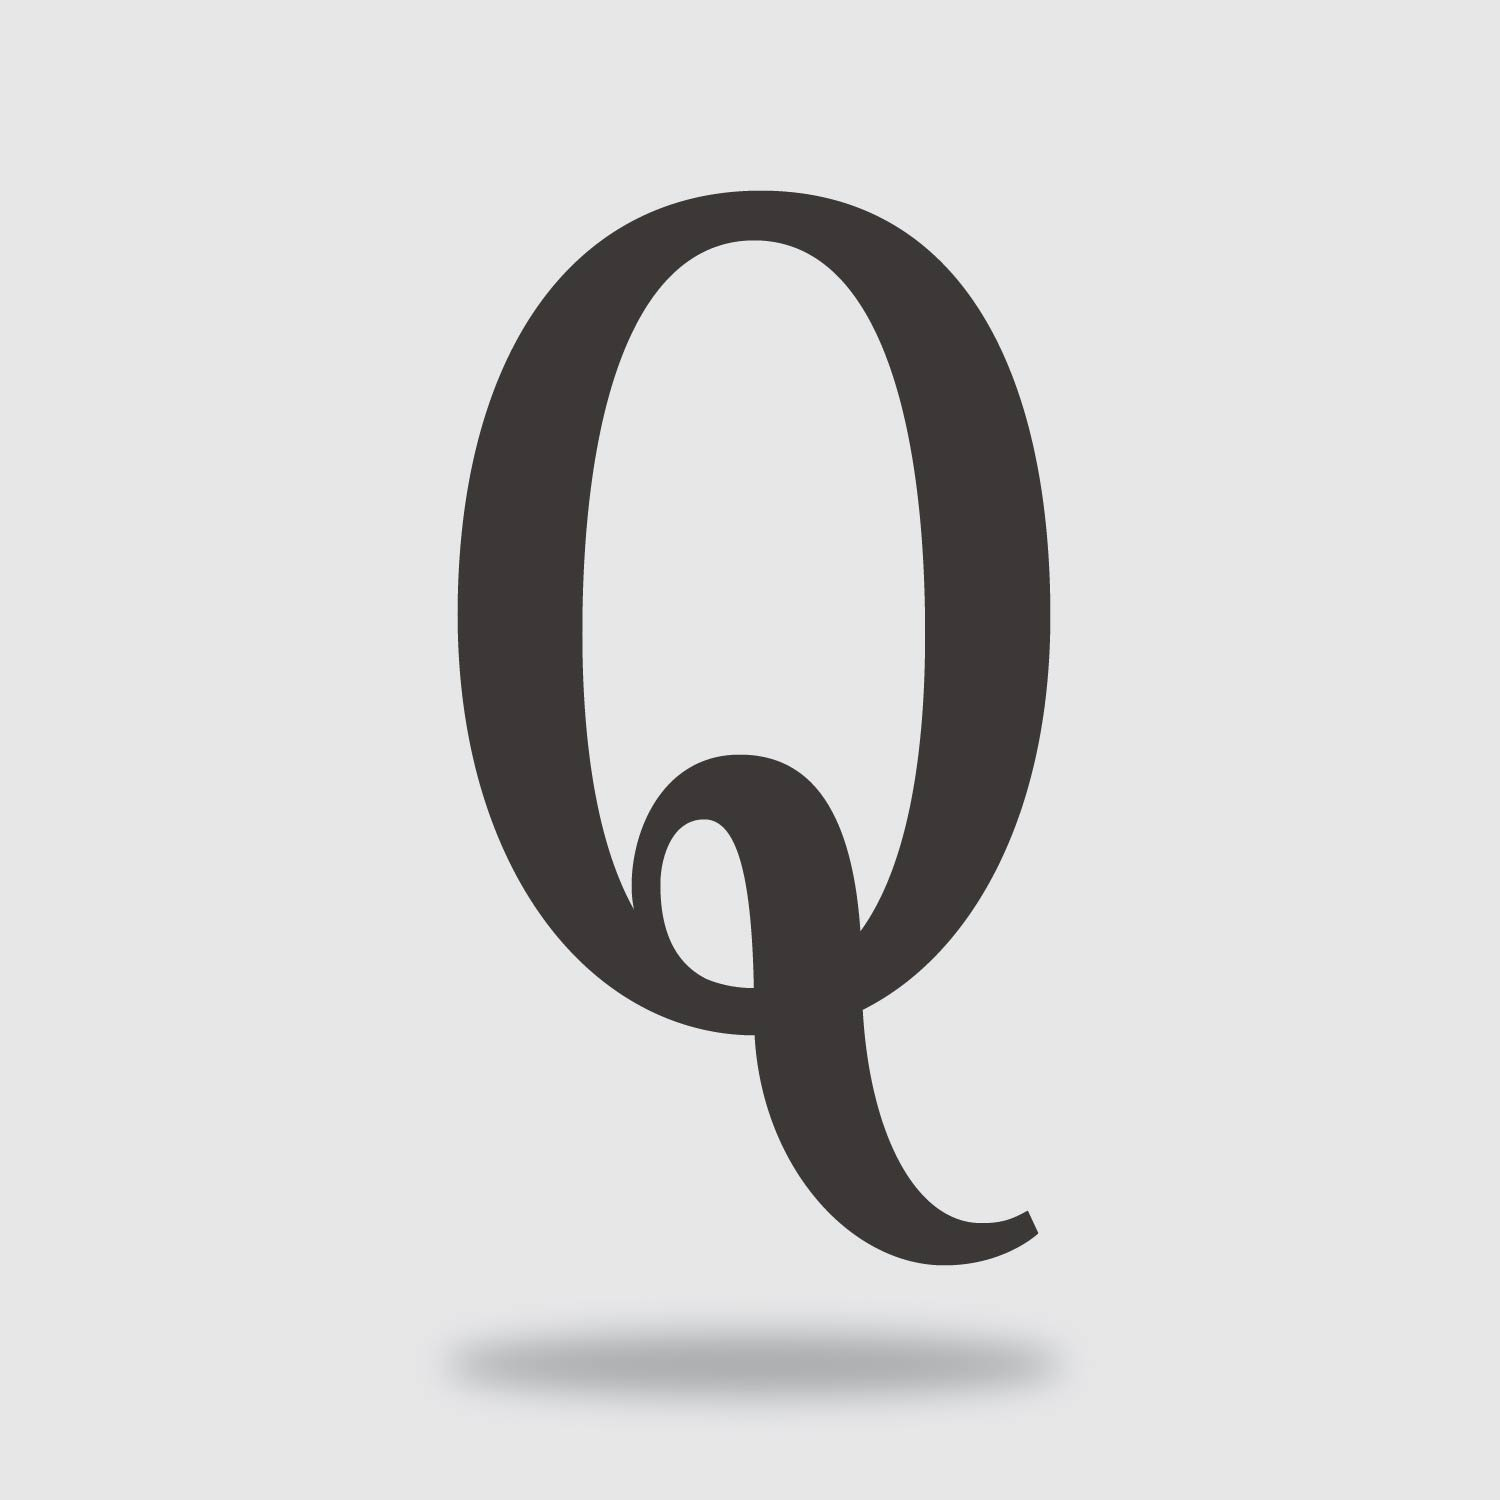 floating condensed letter Q